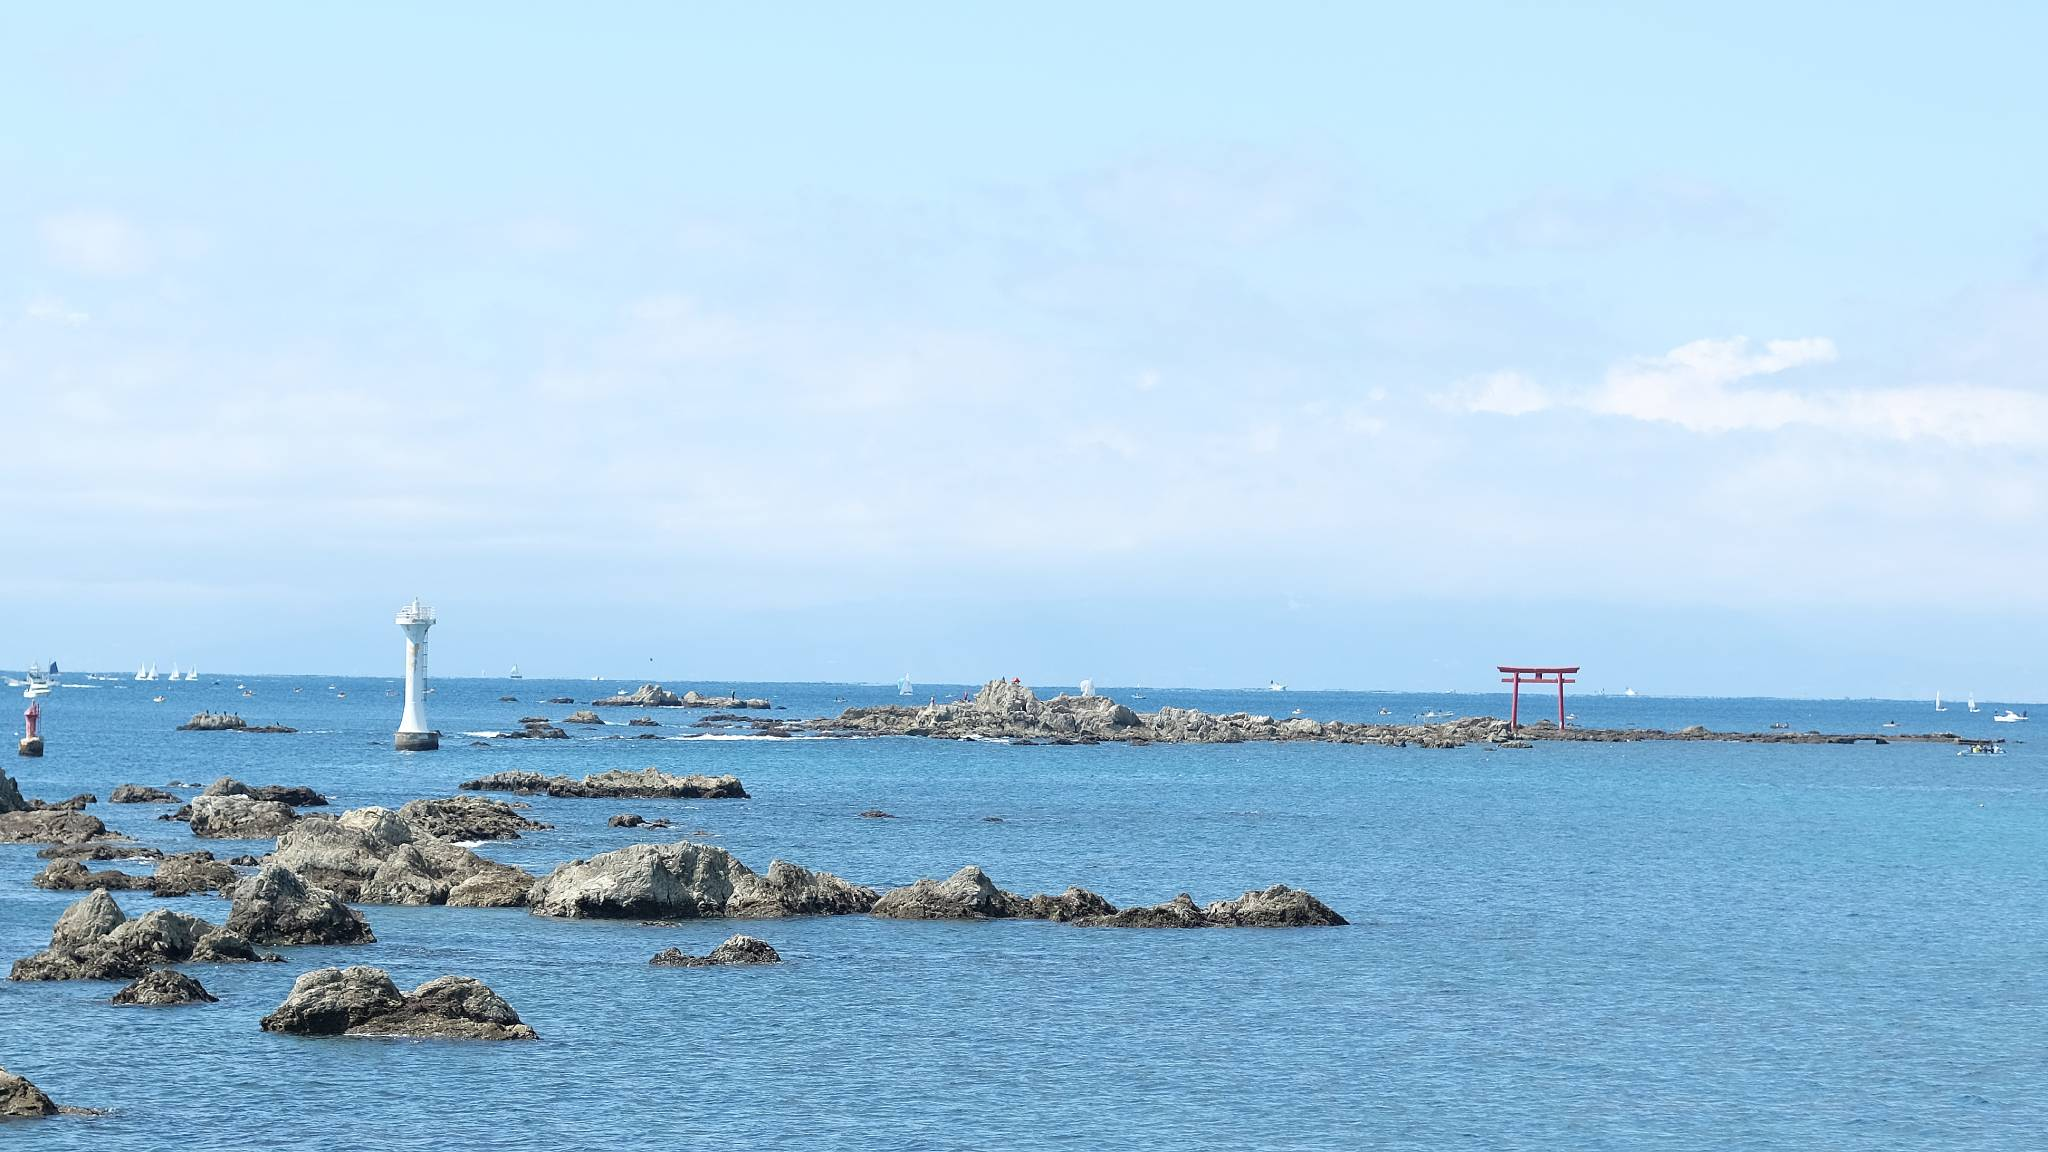 Rocks in the ocean with a red tori gate on one of them.